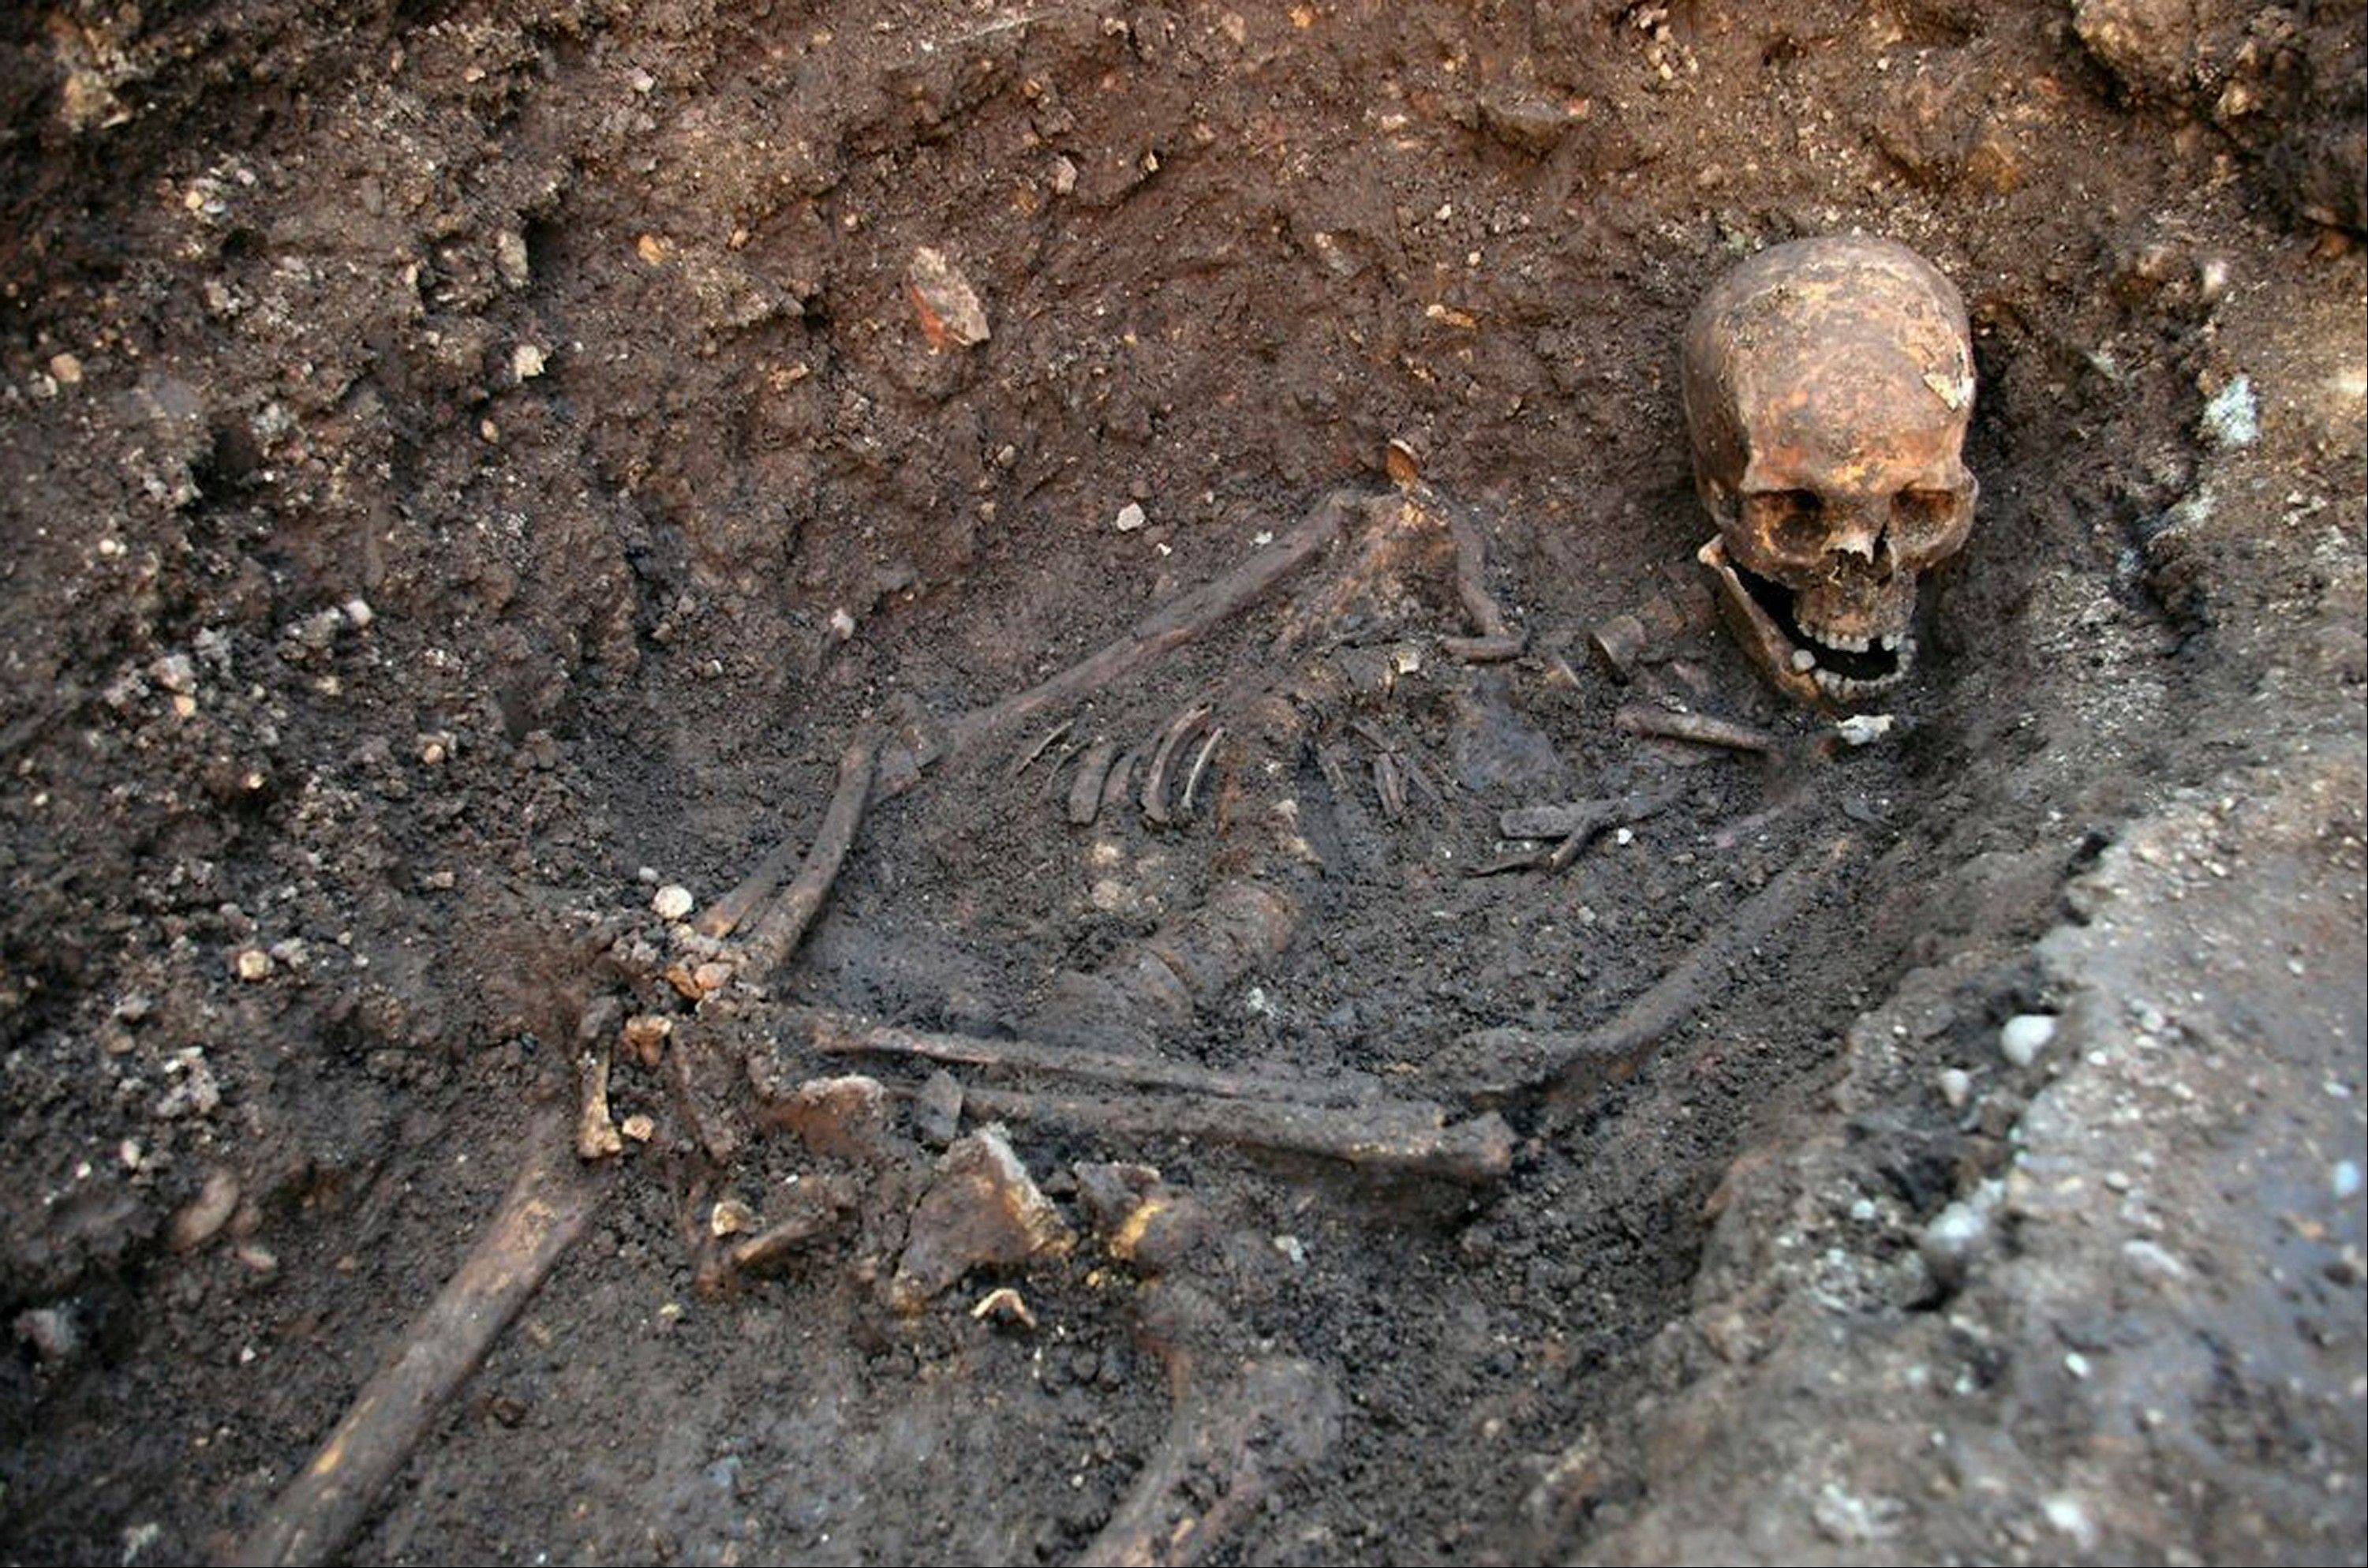 A British High Court judge granted a group of Richard�s relatives the right to challenge plans to rebury the 15th-century monarch in the city of Leicester. The relatives want him buried in the northern England city of York, claiming it was the king�s wish. Richard was killed in battle in 1485. His skeleton was found last year under a Leicester parking lot.